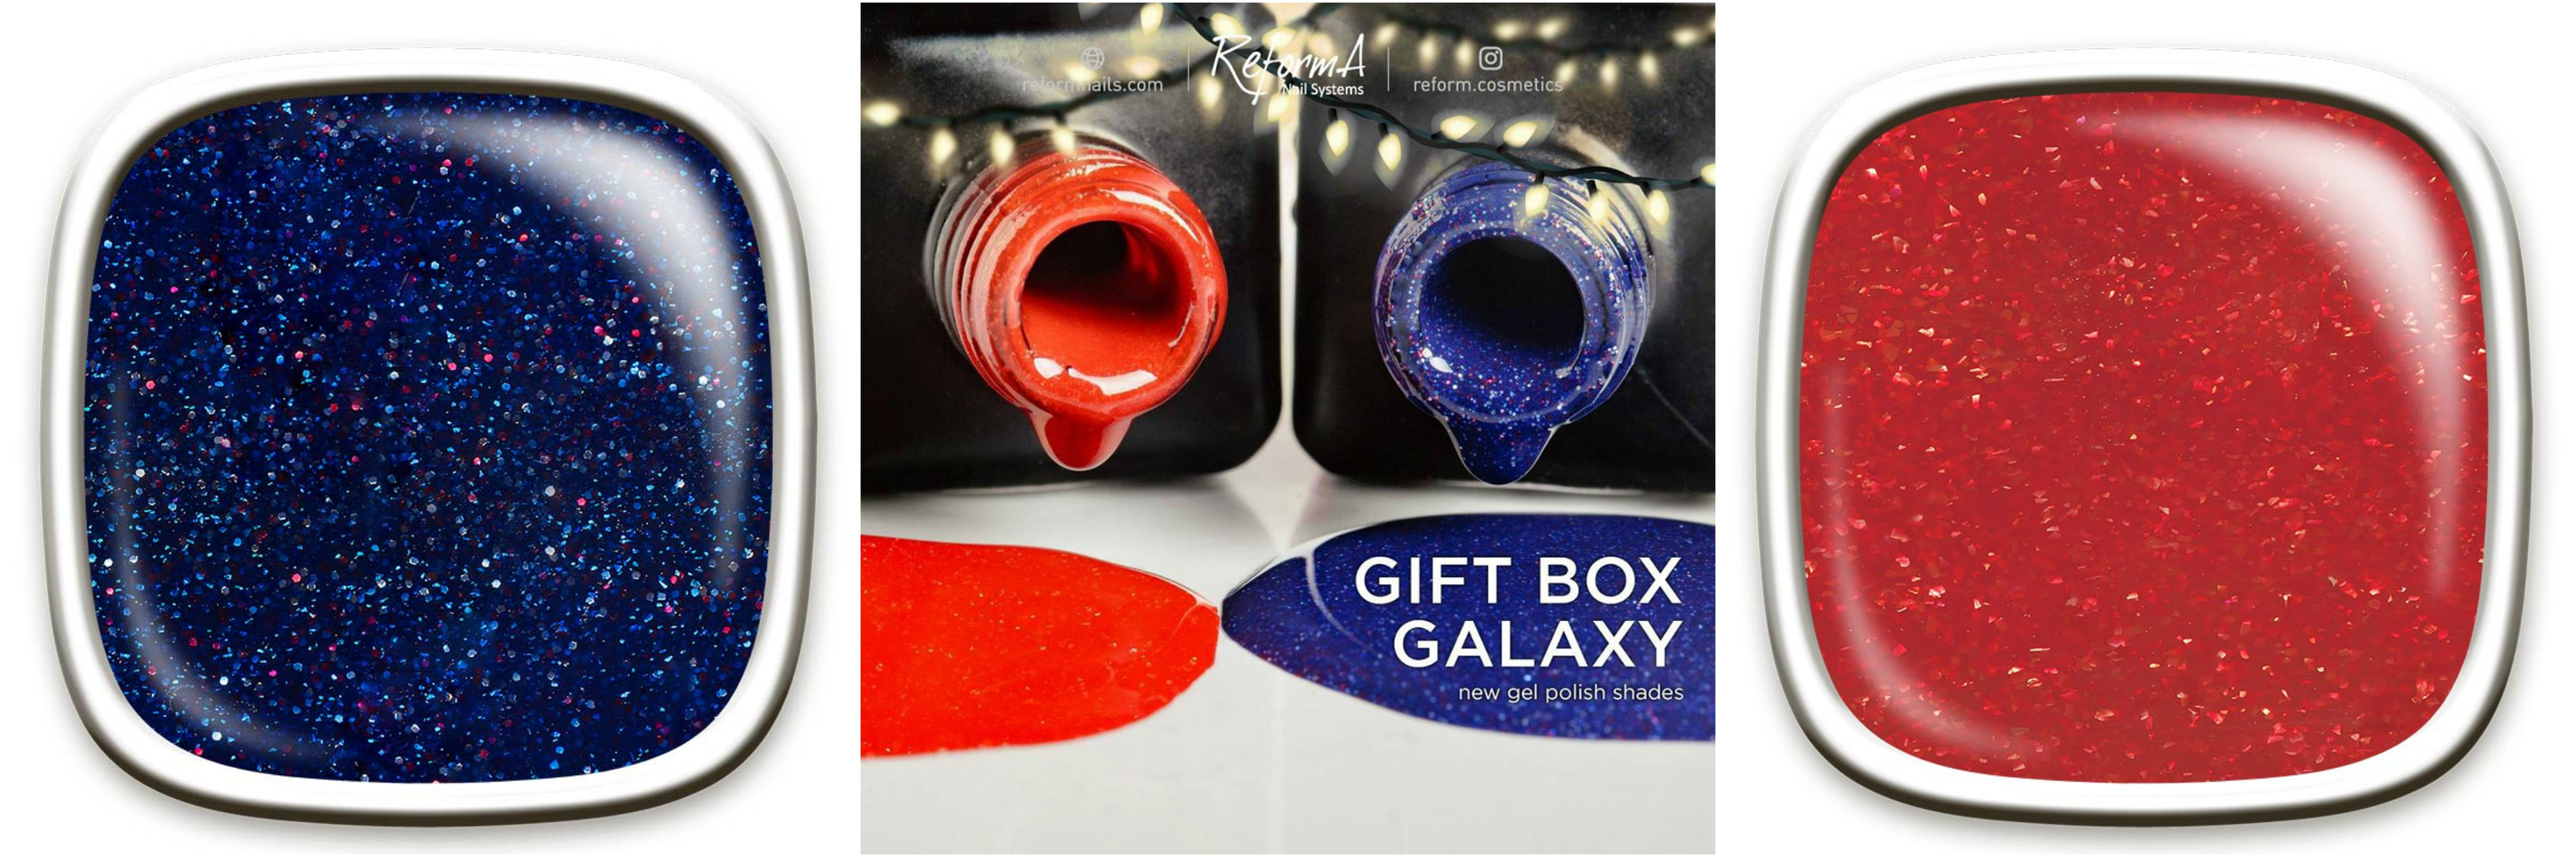 December 2017_dve novi barvi_galaxy_gift box